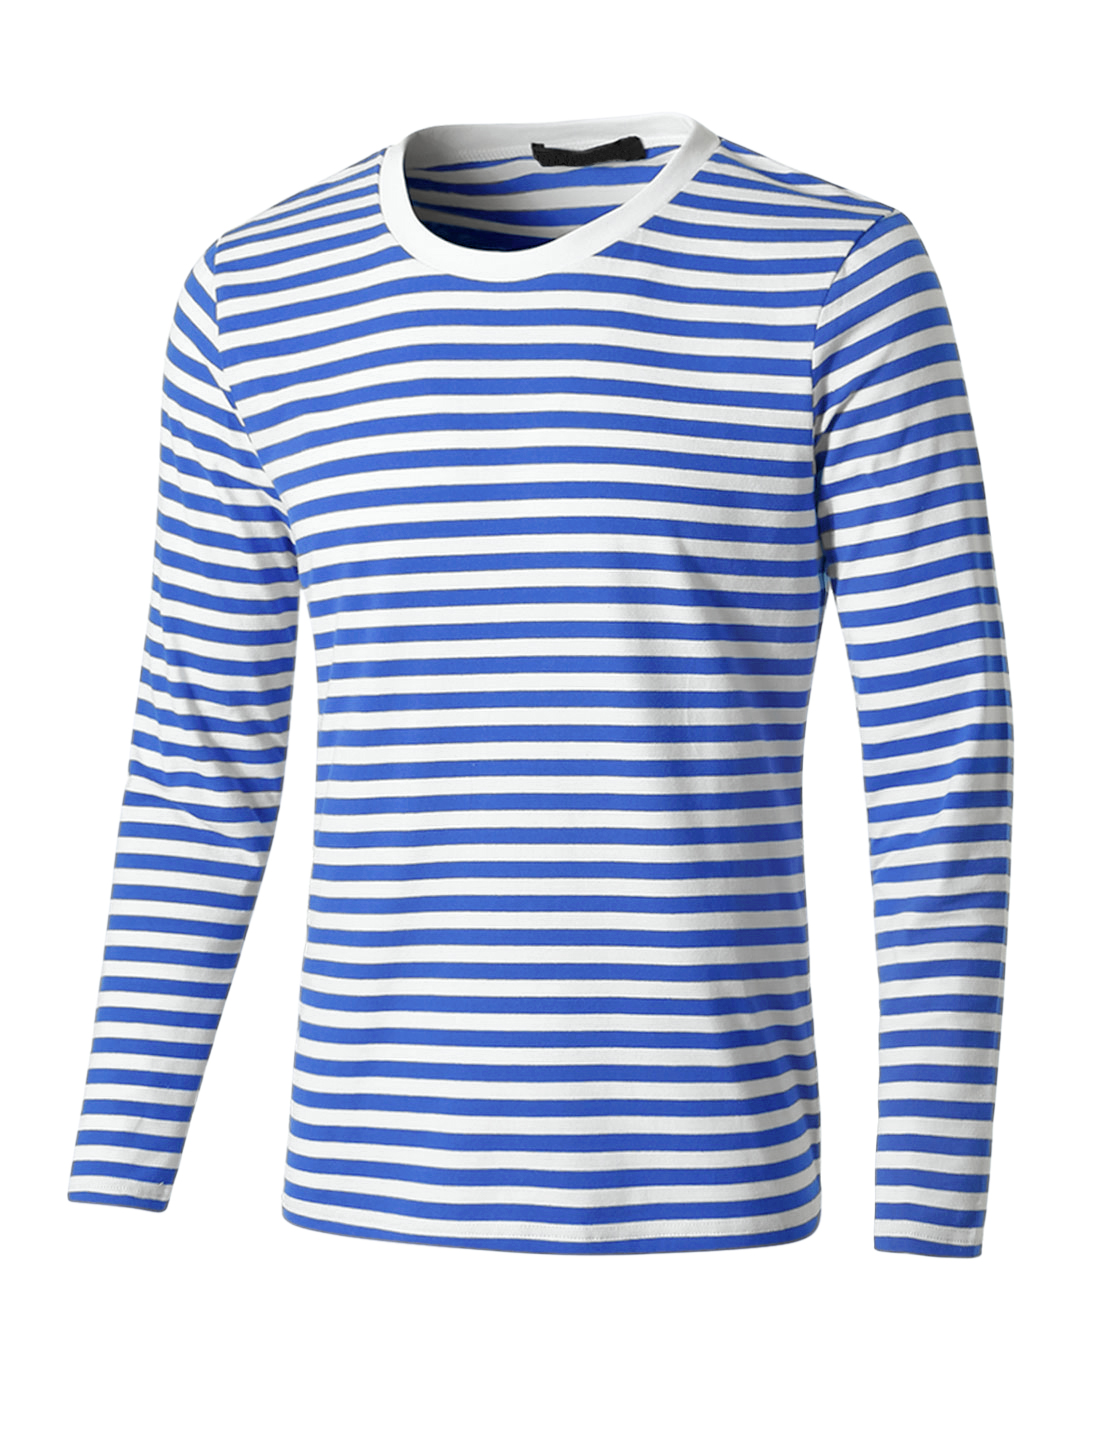 Men Crew Neck Long Sleeve Striped Tee T Shirt Blue XL XL (US 46)